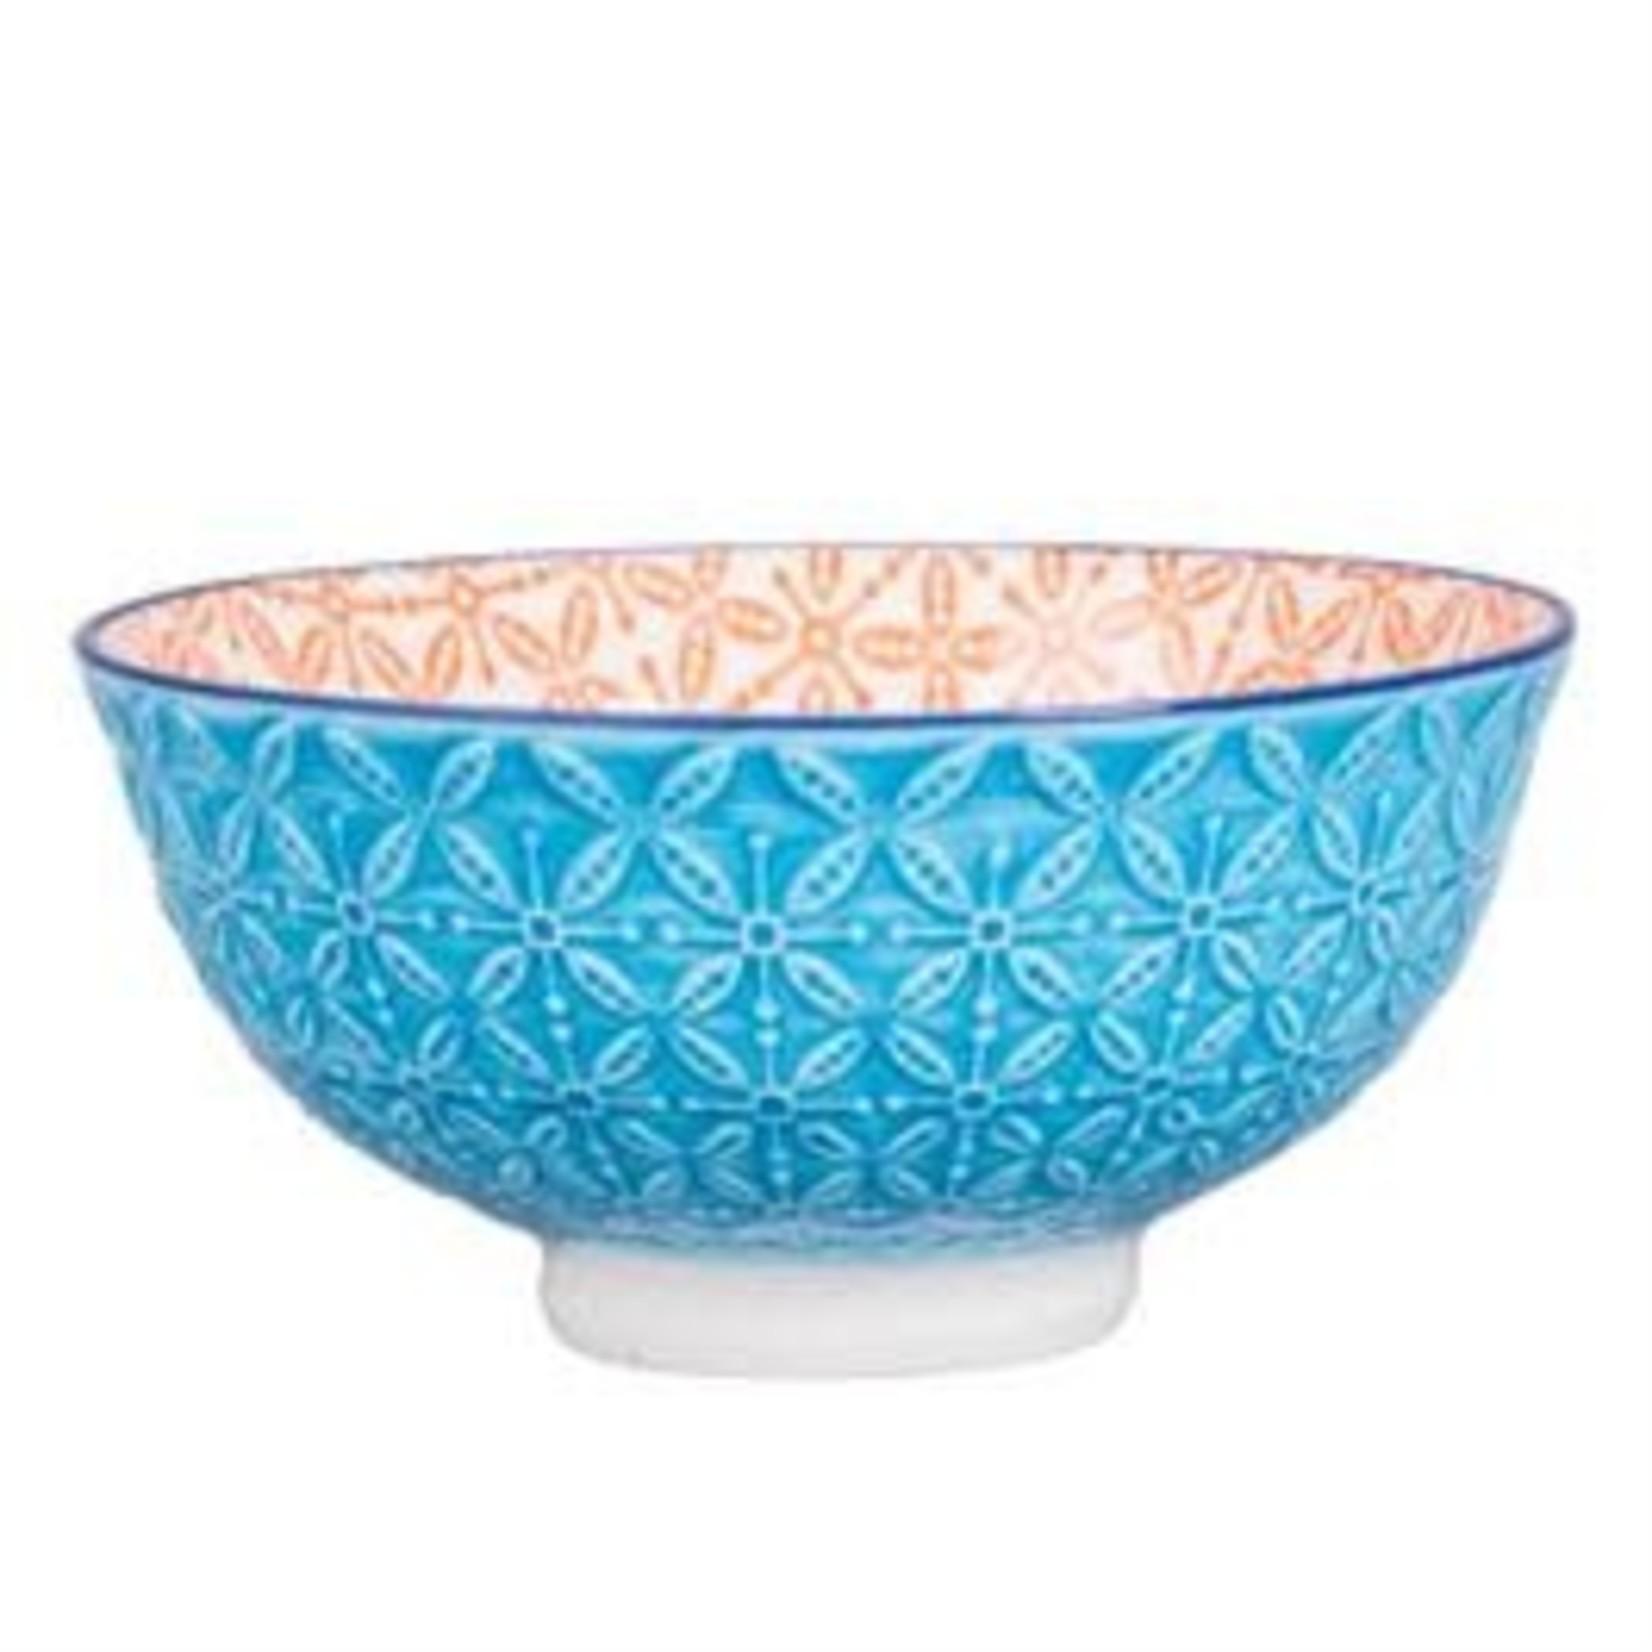 BIA ASTER Footed Bowl org/turq